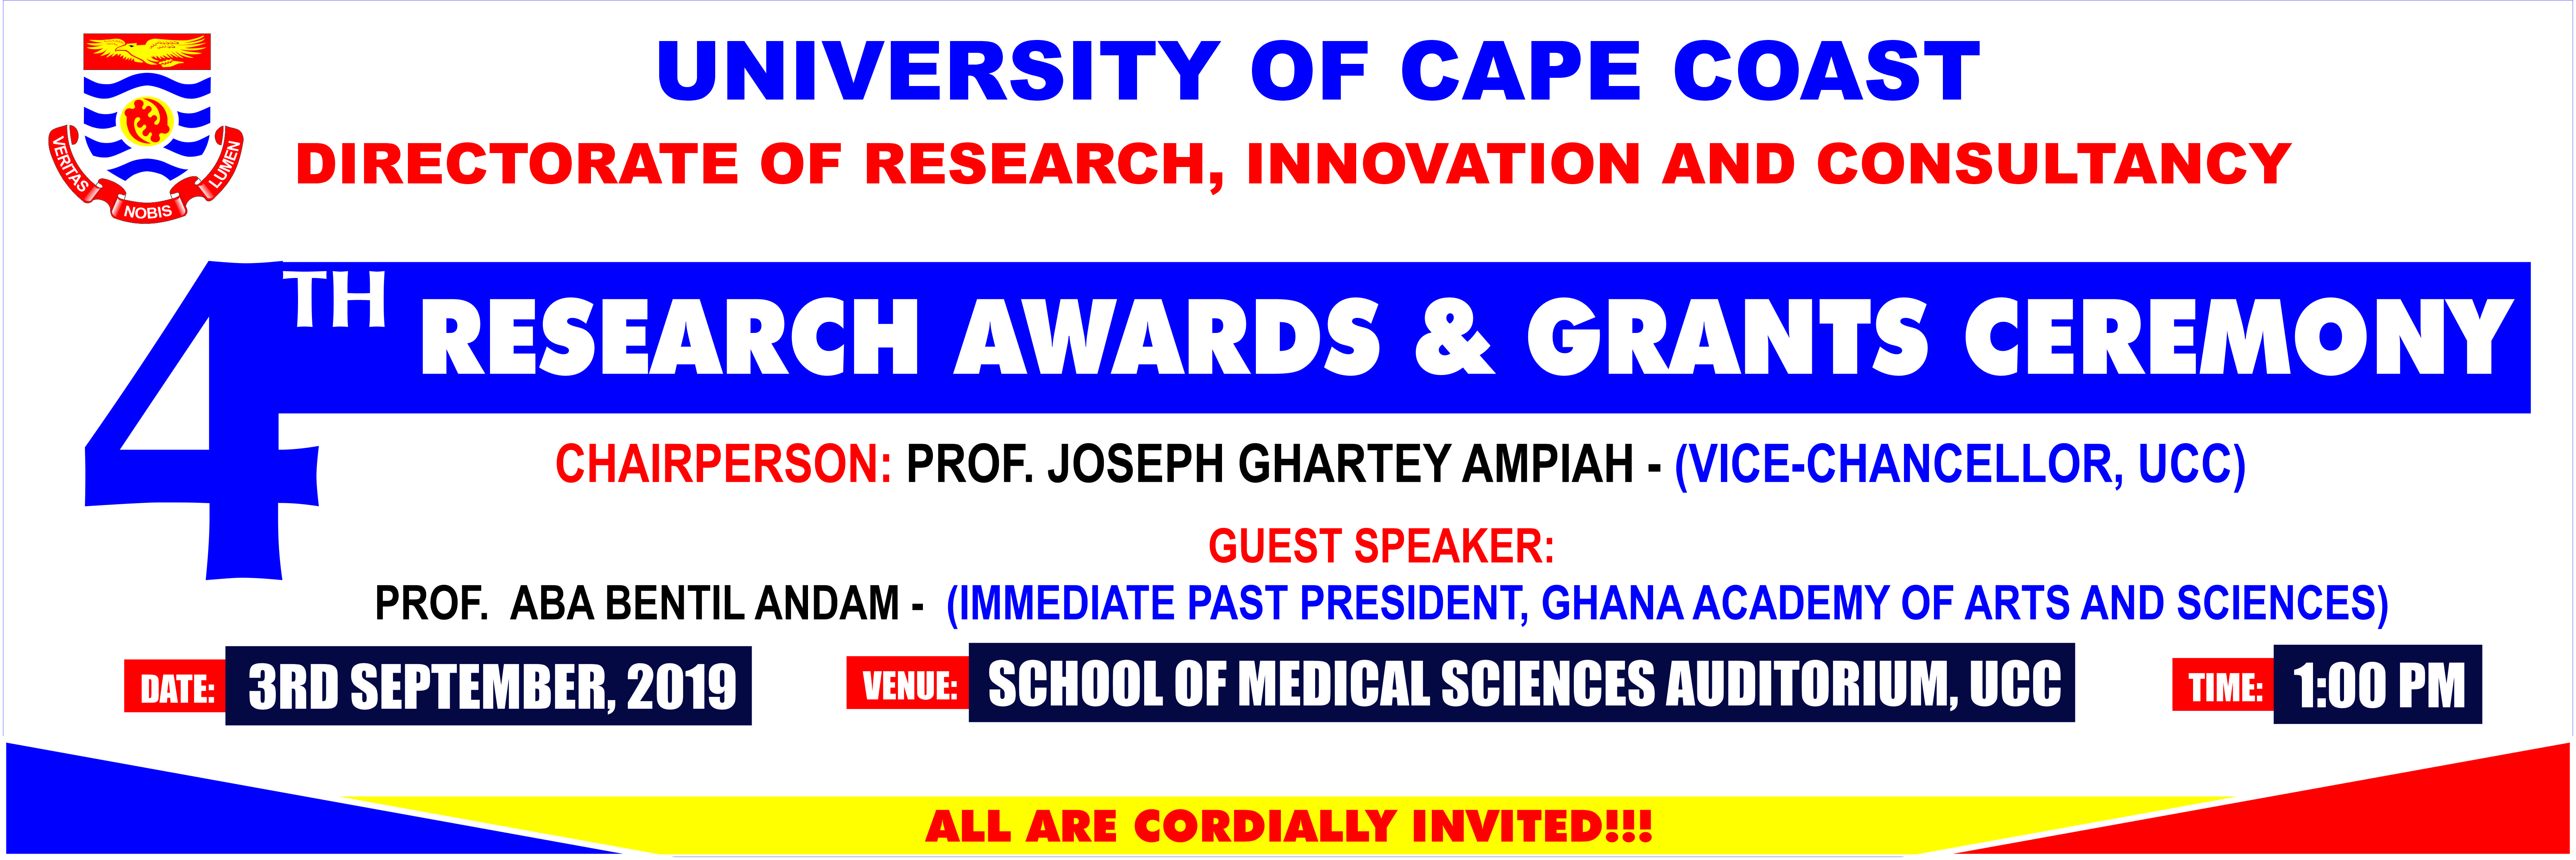 4th Research Awards and Grants Ceremony